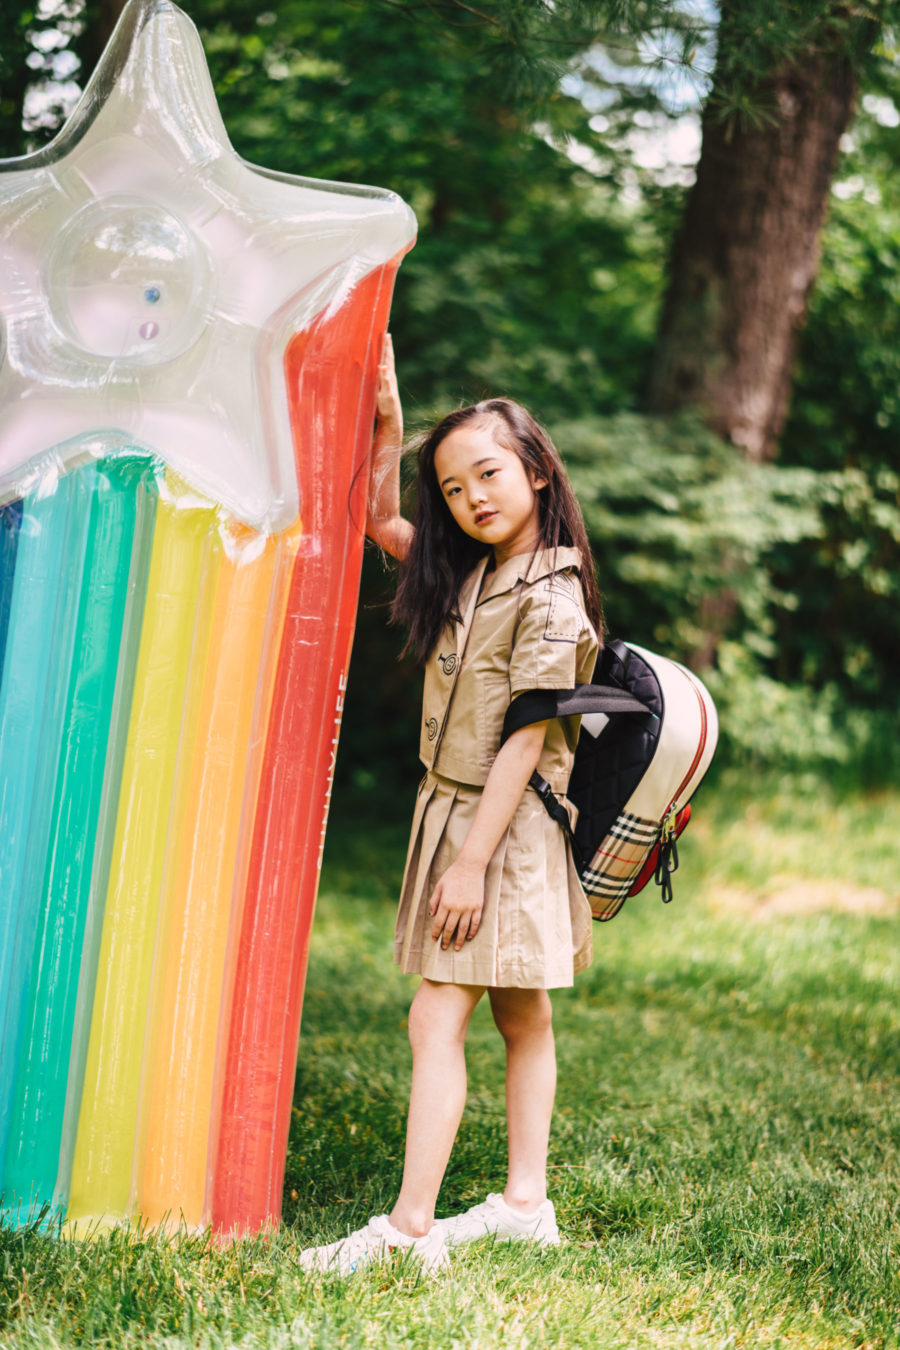 luisaviaroma summer outfits for kids featuring burberry skirt and backpack // Jessica Wang - Notjessfashion.com